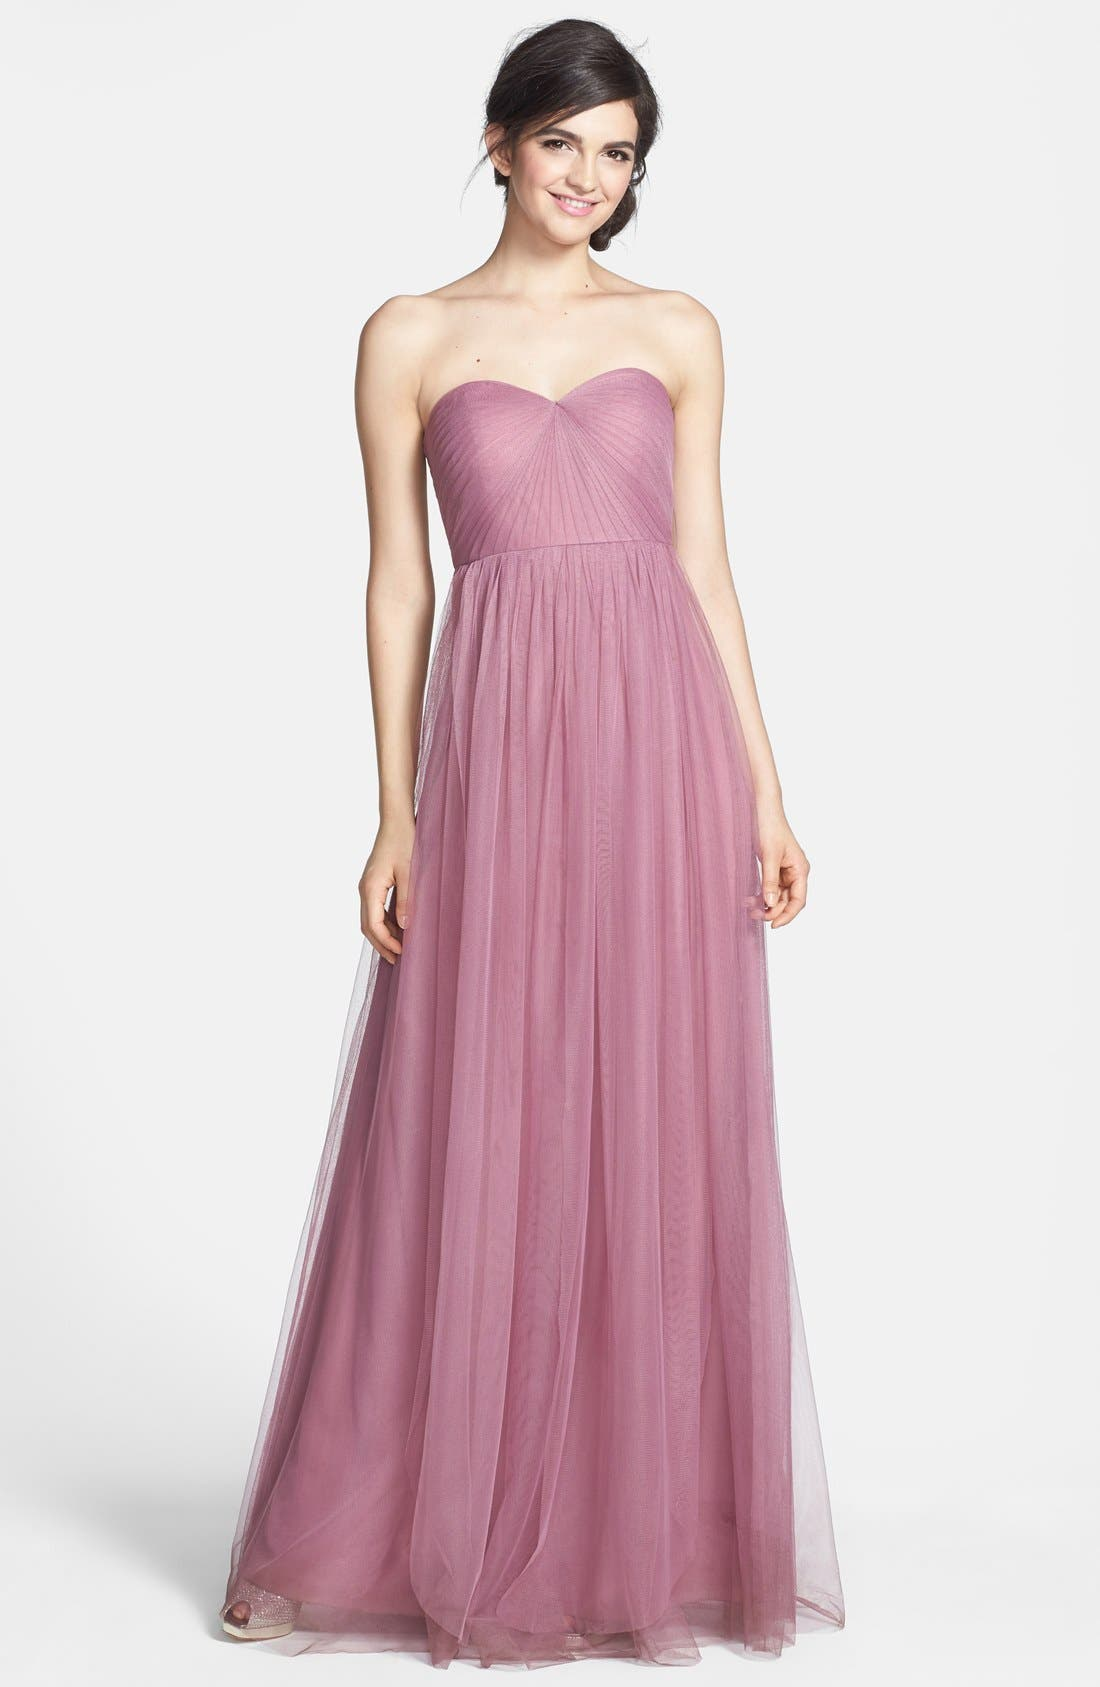 Alternate Image 1 Selected - Jenny Yoo 'Annabelle' Convertible Tulle Column Dress